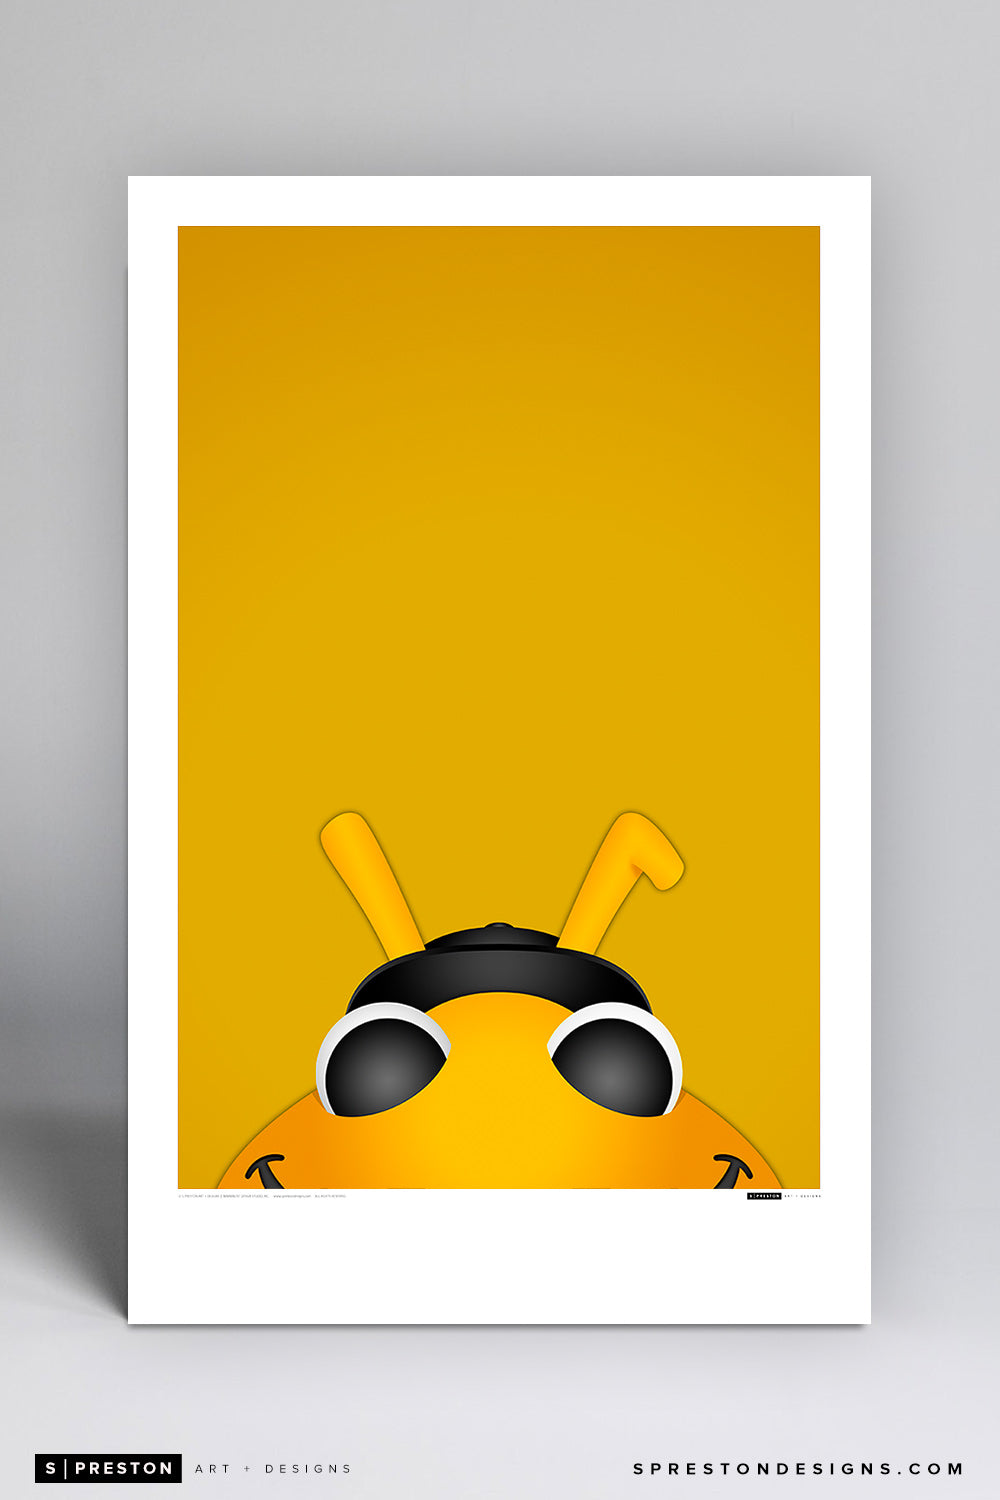 Minimalist Bumble - Salt Lake Bees Poster Print Salt Lake Bees - S Preston